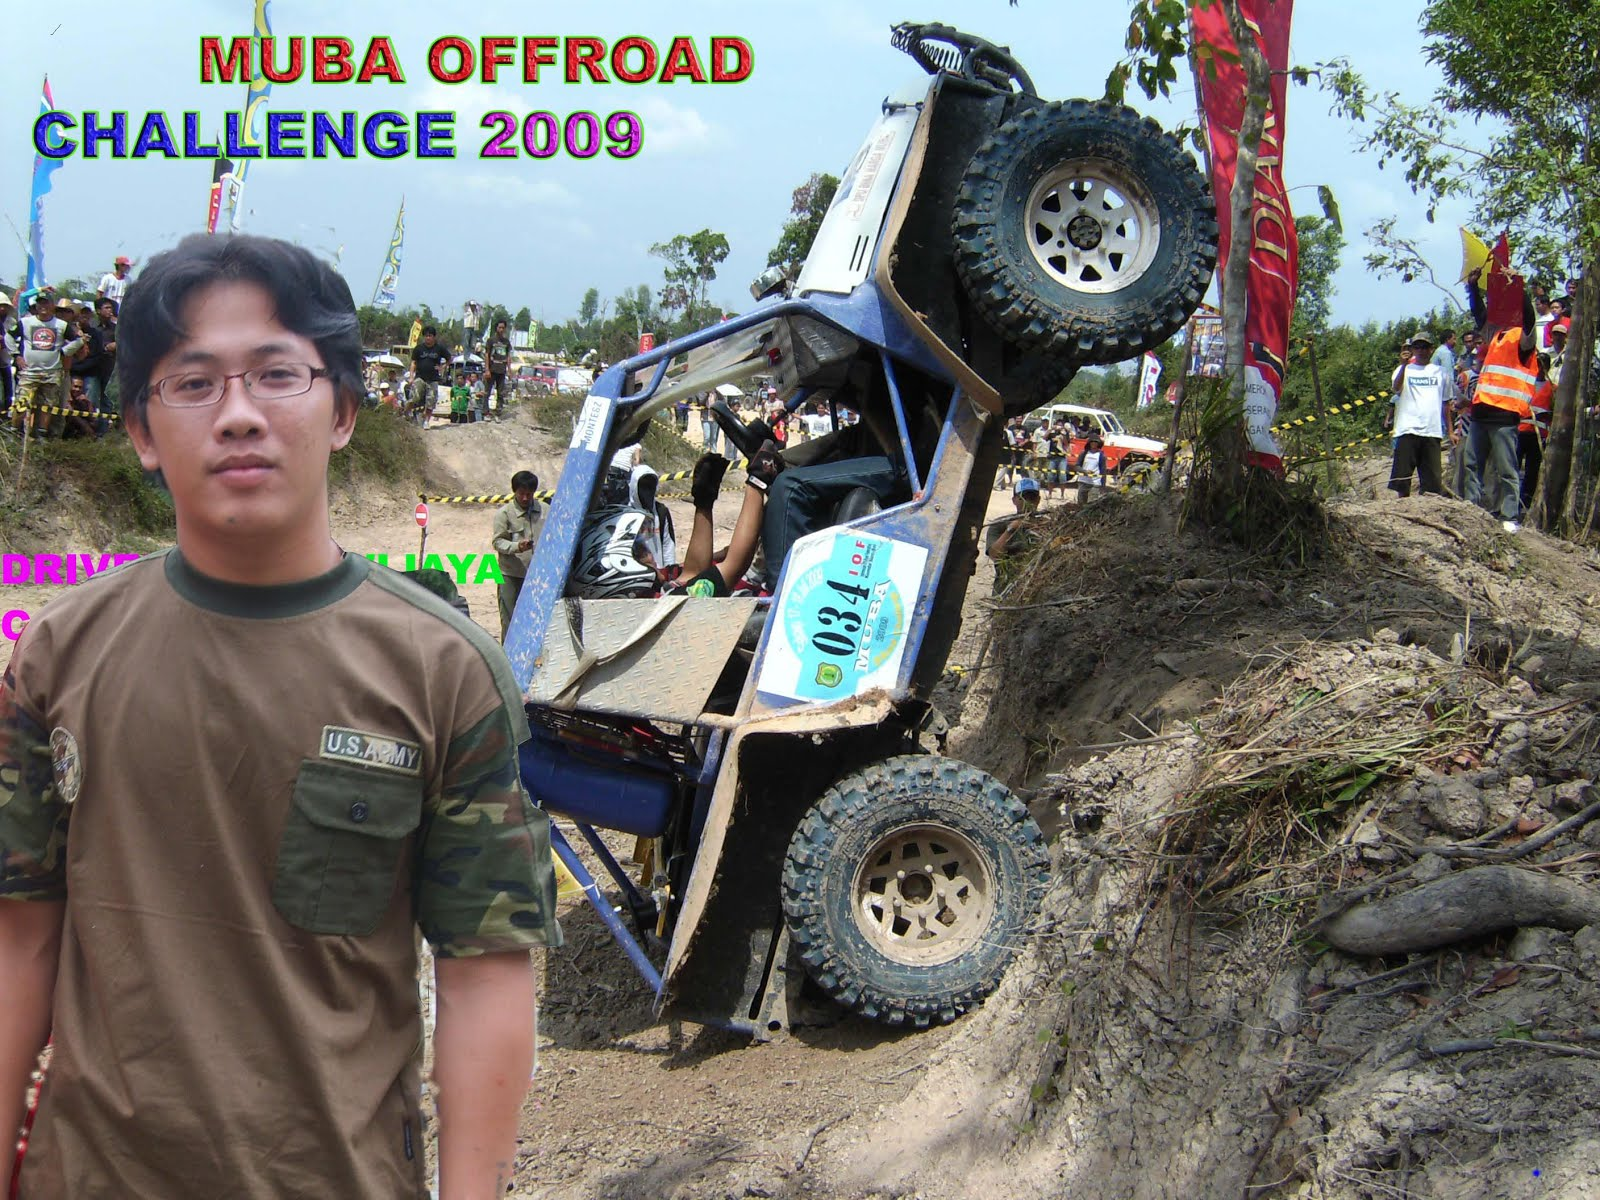 ::Muba Off Road team::